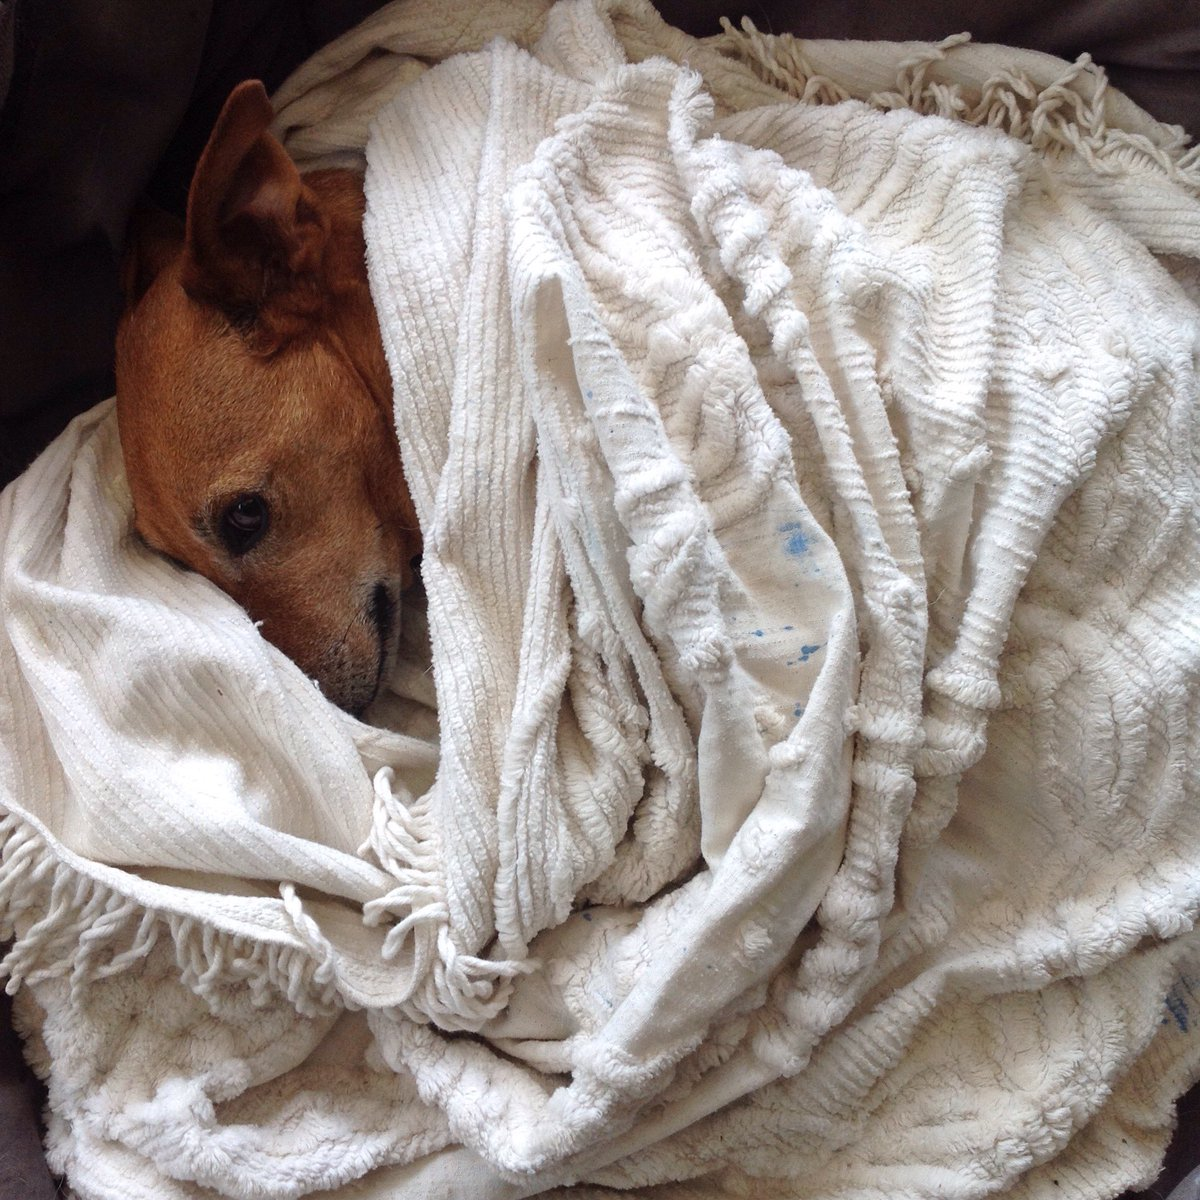 When it's raining and you don't want to get out of bed! #mydog #canberra #rainydaypic.twitter.com/HEOmIiN8r1